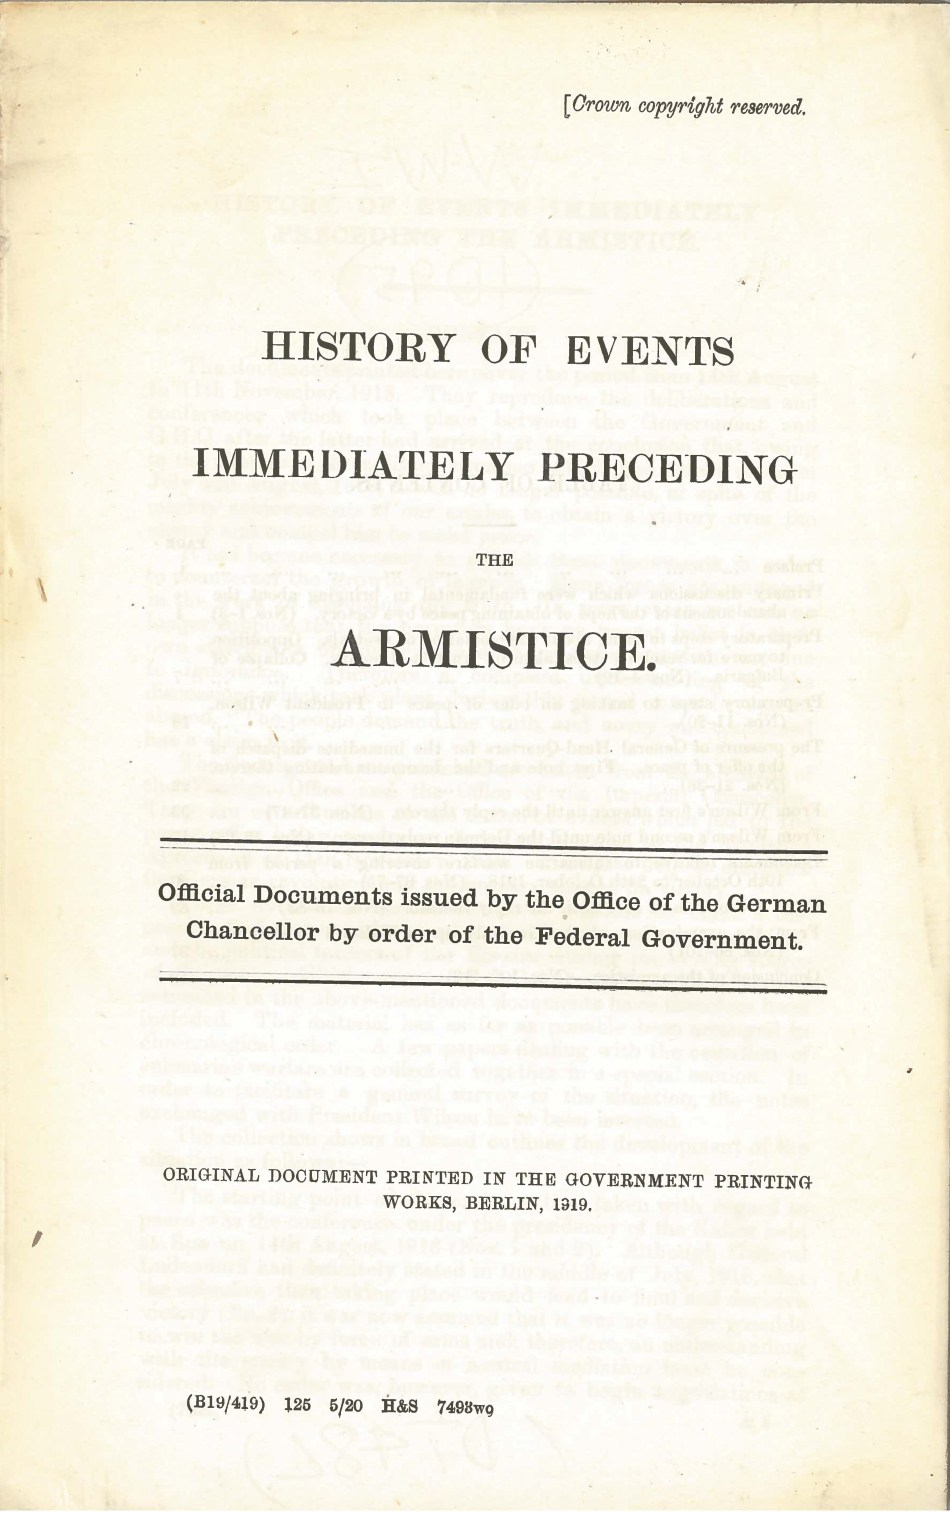 History of Events Immediately Preceding the Armistice 1918